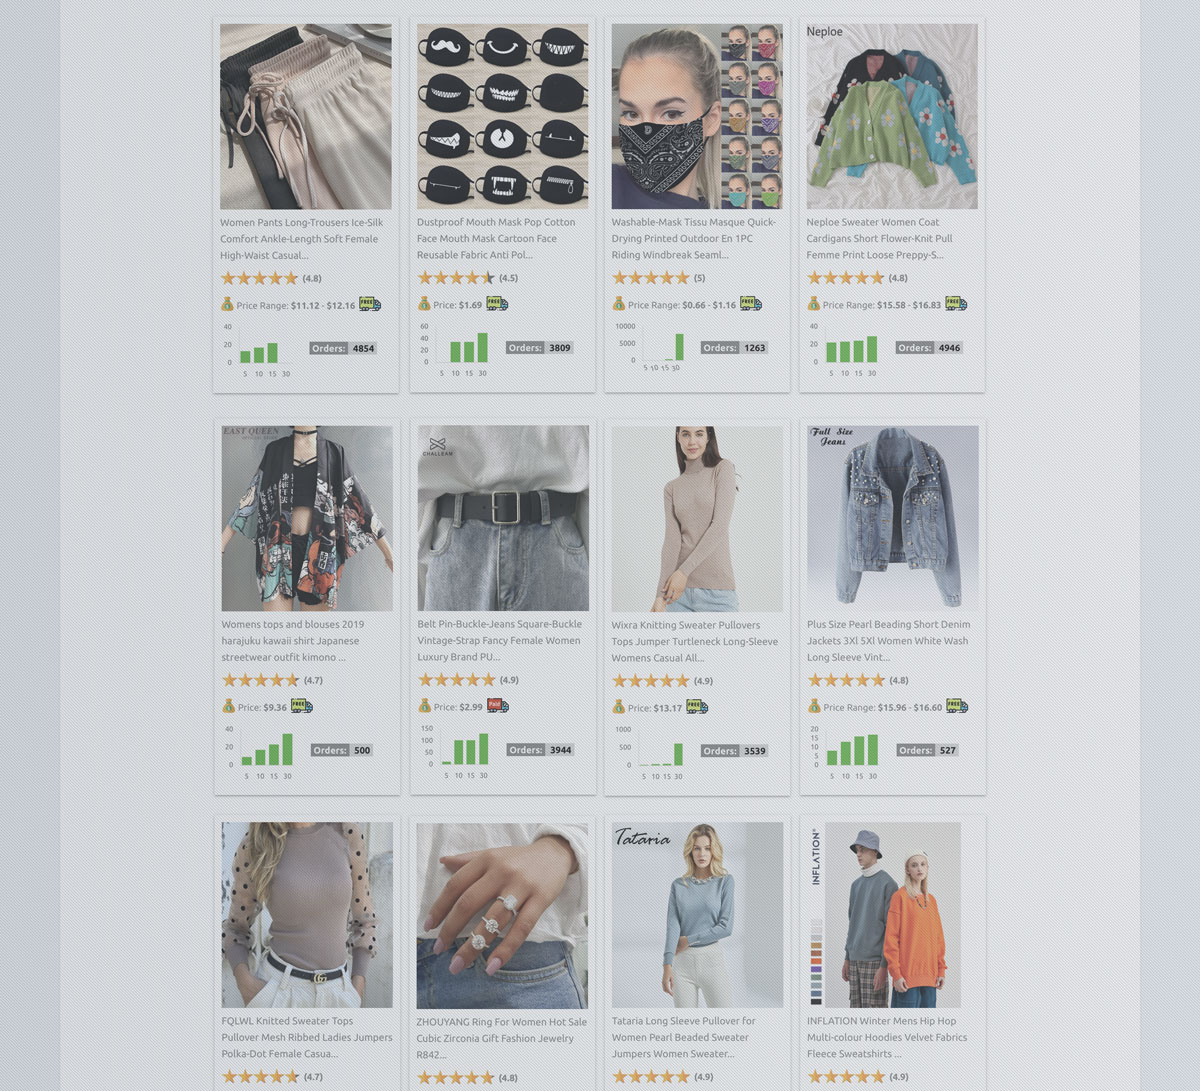 aliexpress product research collection